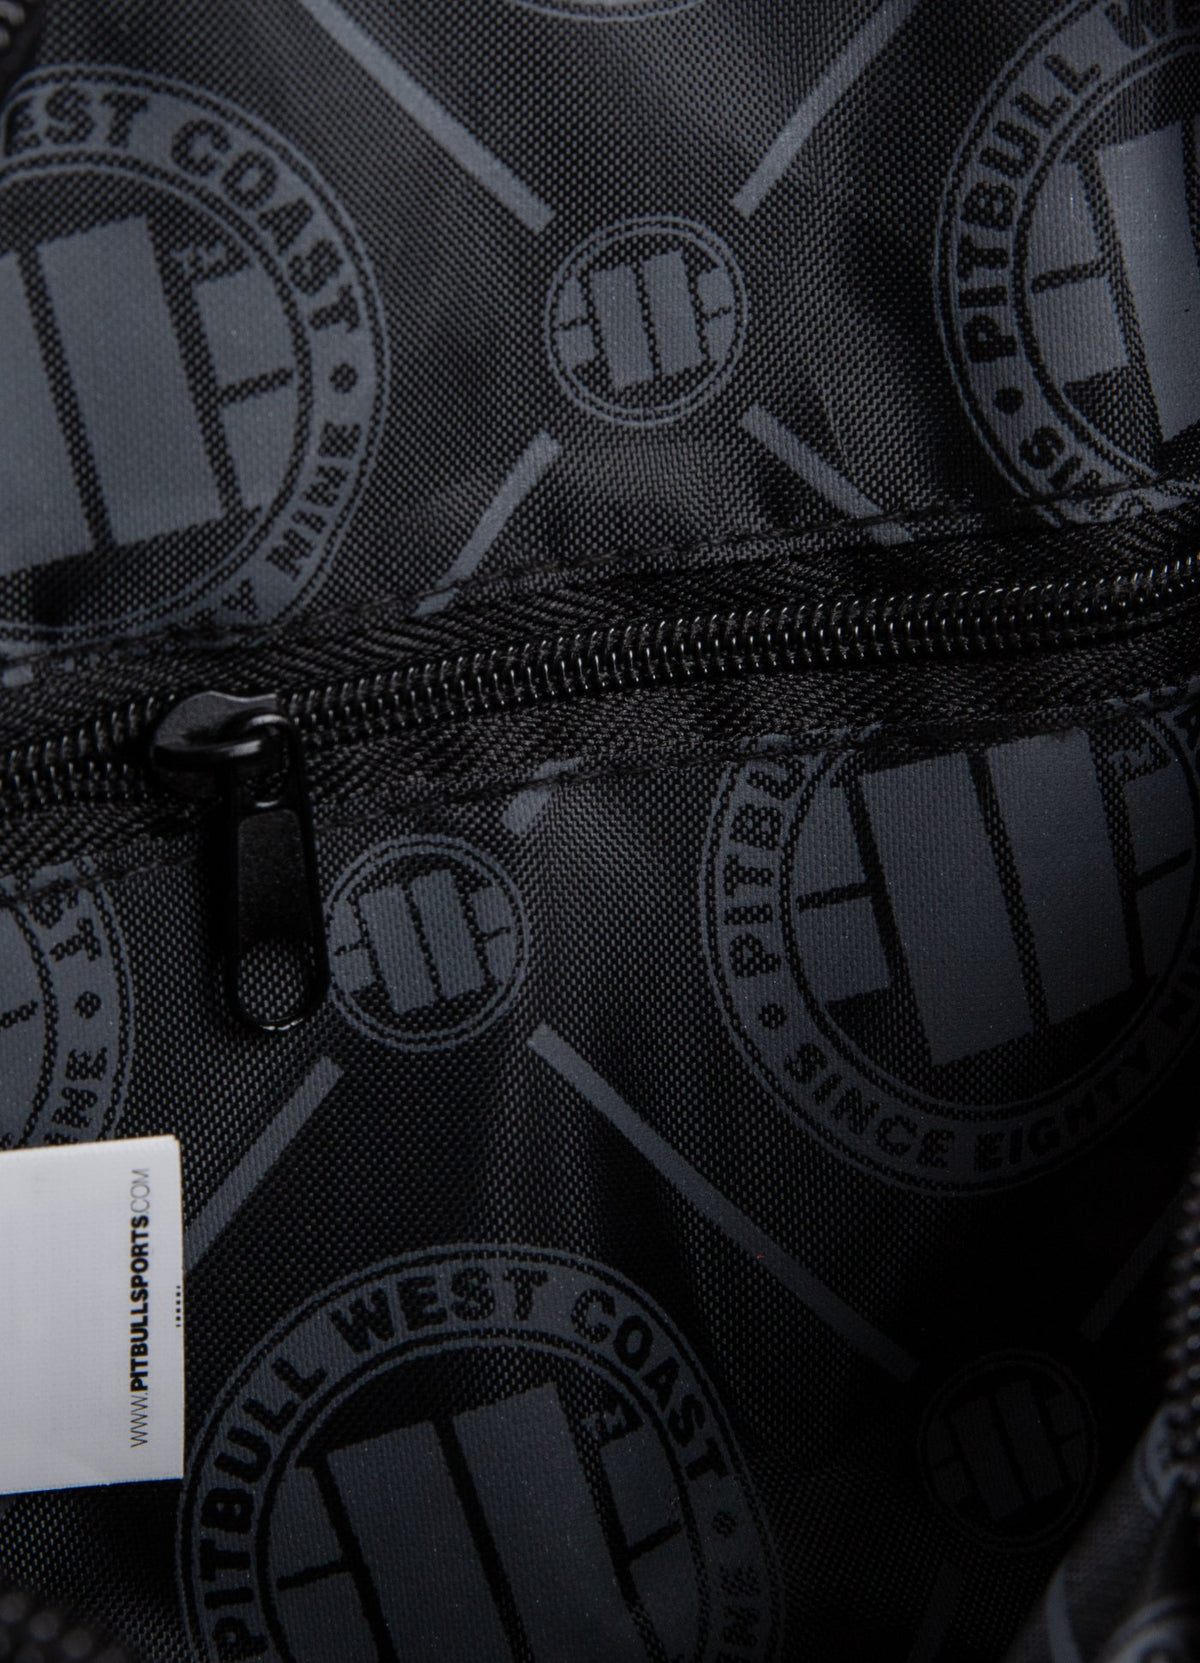 SHOULDER BAG SINCE 1989 GREY - Pitbull West Coast U.S.A.